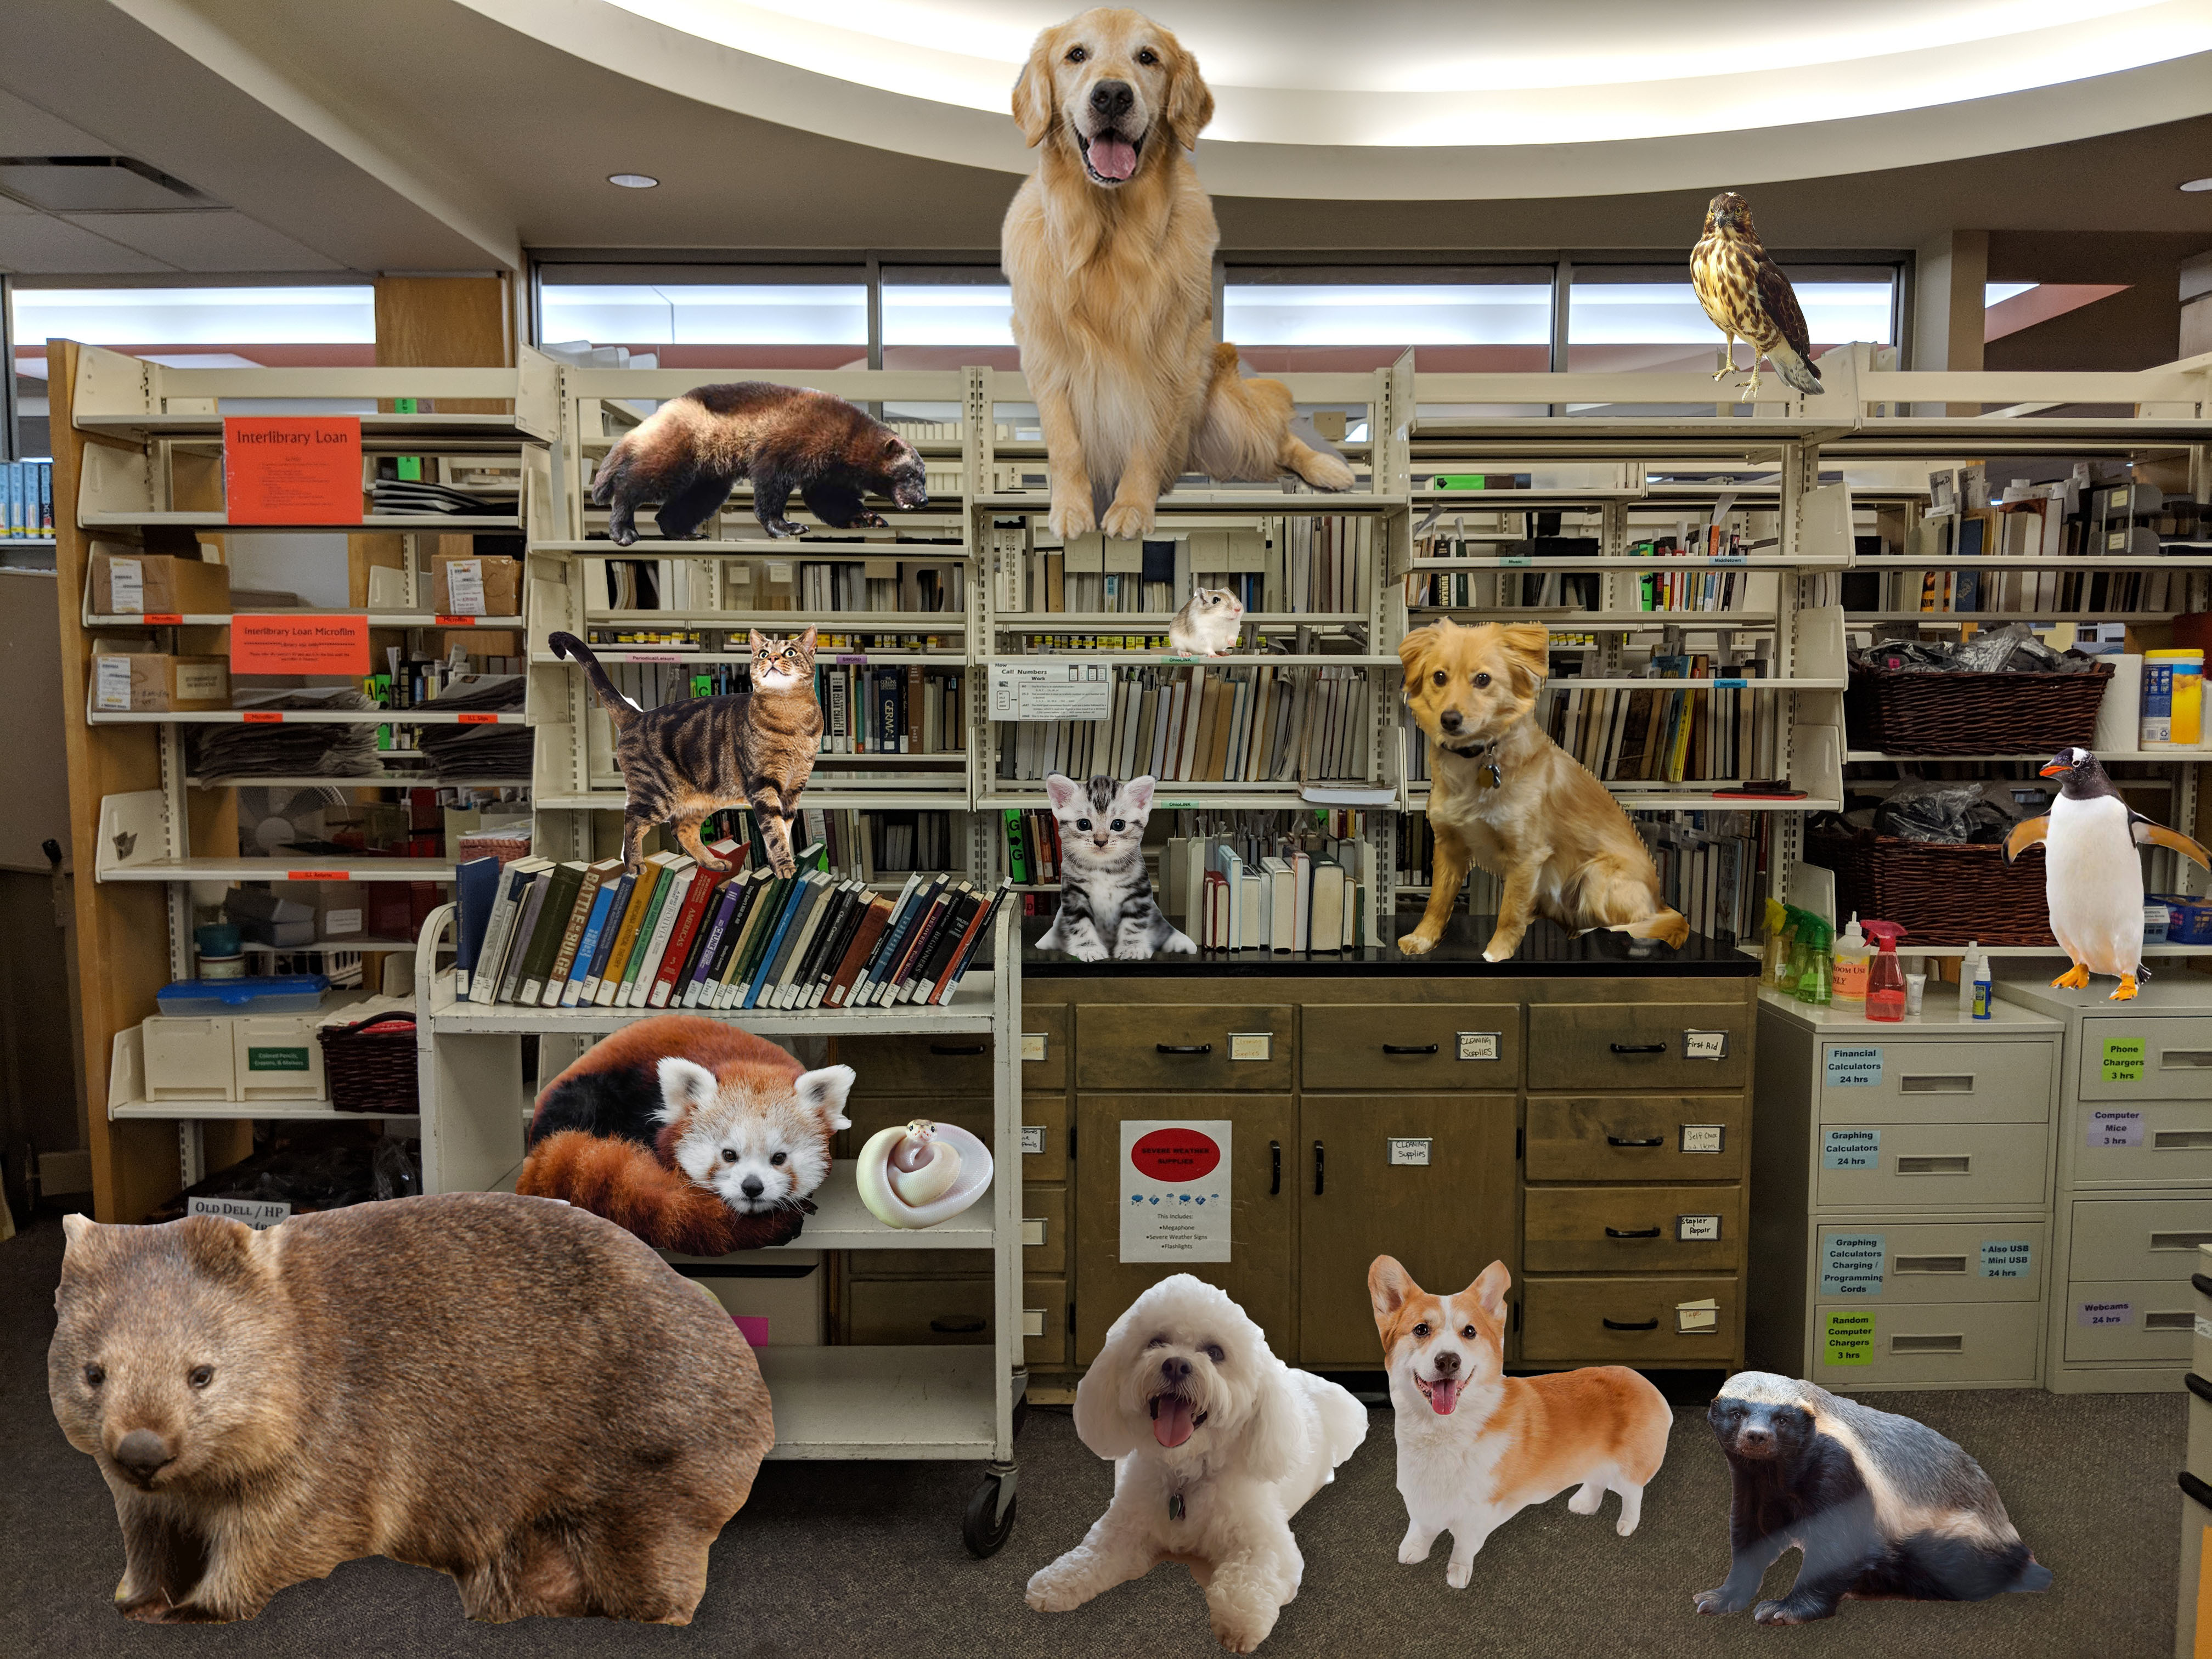 Library shelves with animals obviously photoshopped onto them: cats, dogs, badgers, wombat, penguin, fox and a hawk